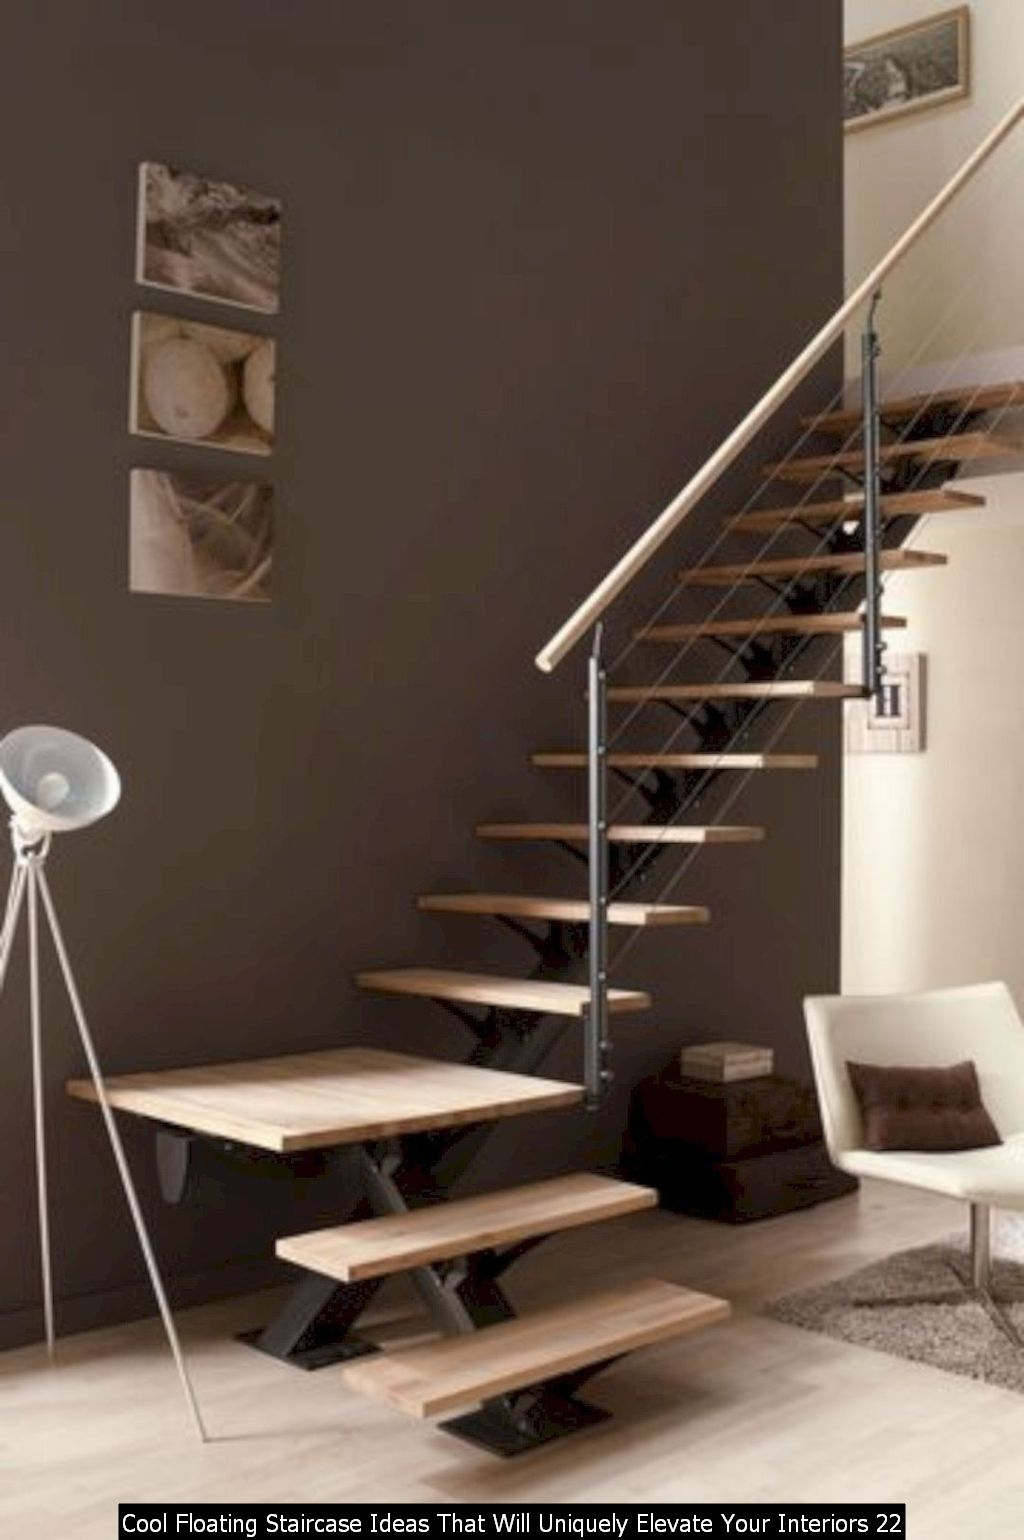 Cool Floating Staircase Ideas That Will Uniquely Elevate Your Interiors 22